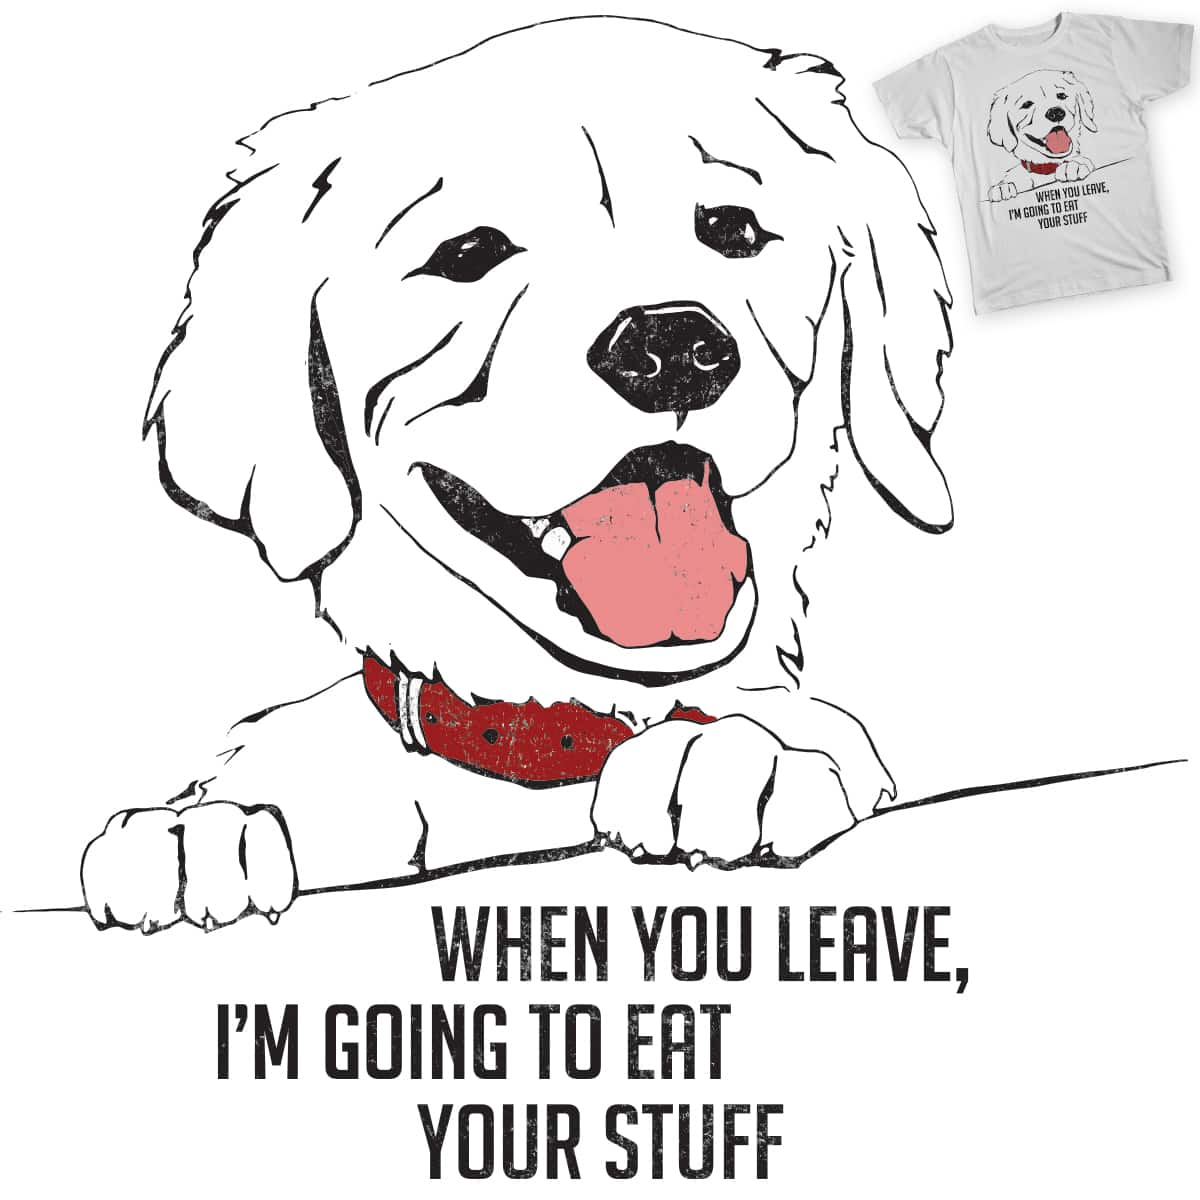 Classy If Dogs Could Talk By Mjacs On Threadless Score If Dogs Could Talk By Mjacs On Threadless If Dogs Could Talk Poem By Denise Rodgers If Dogs Could Talk Poem bark post If Dogs Could Talk